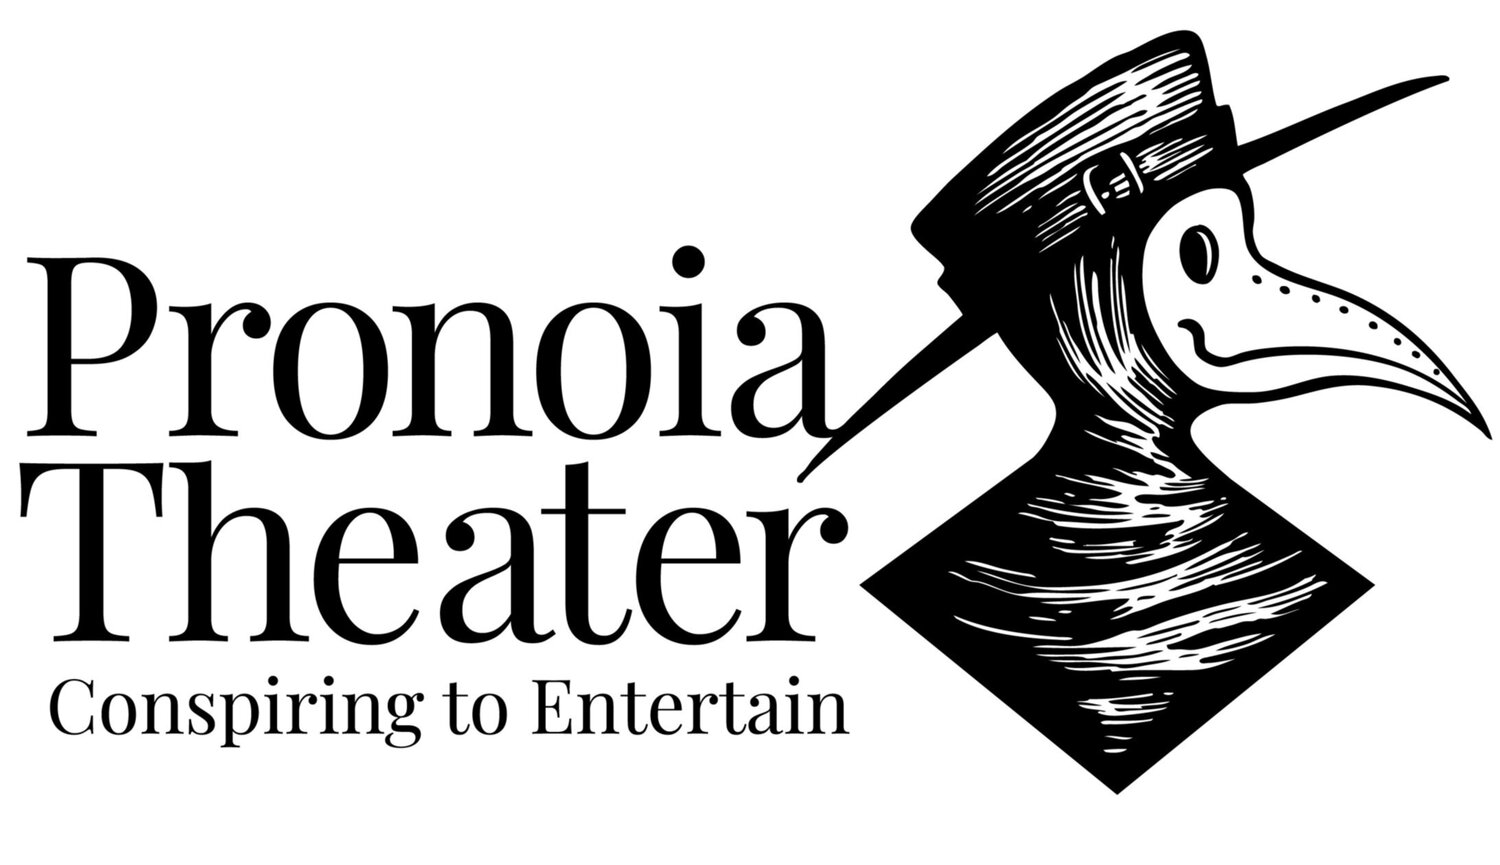 Pronoia Theater